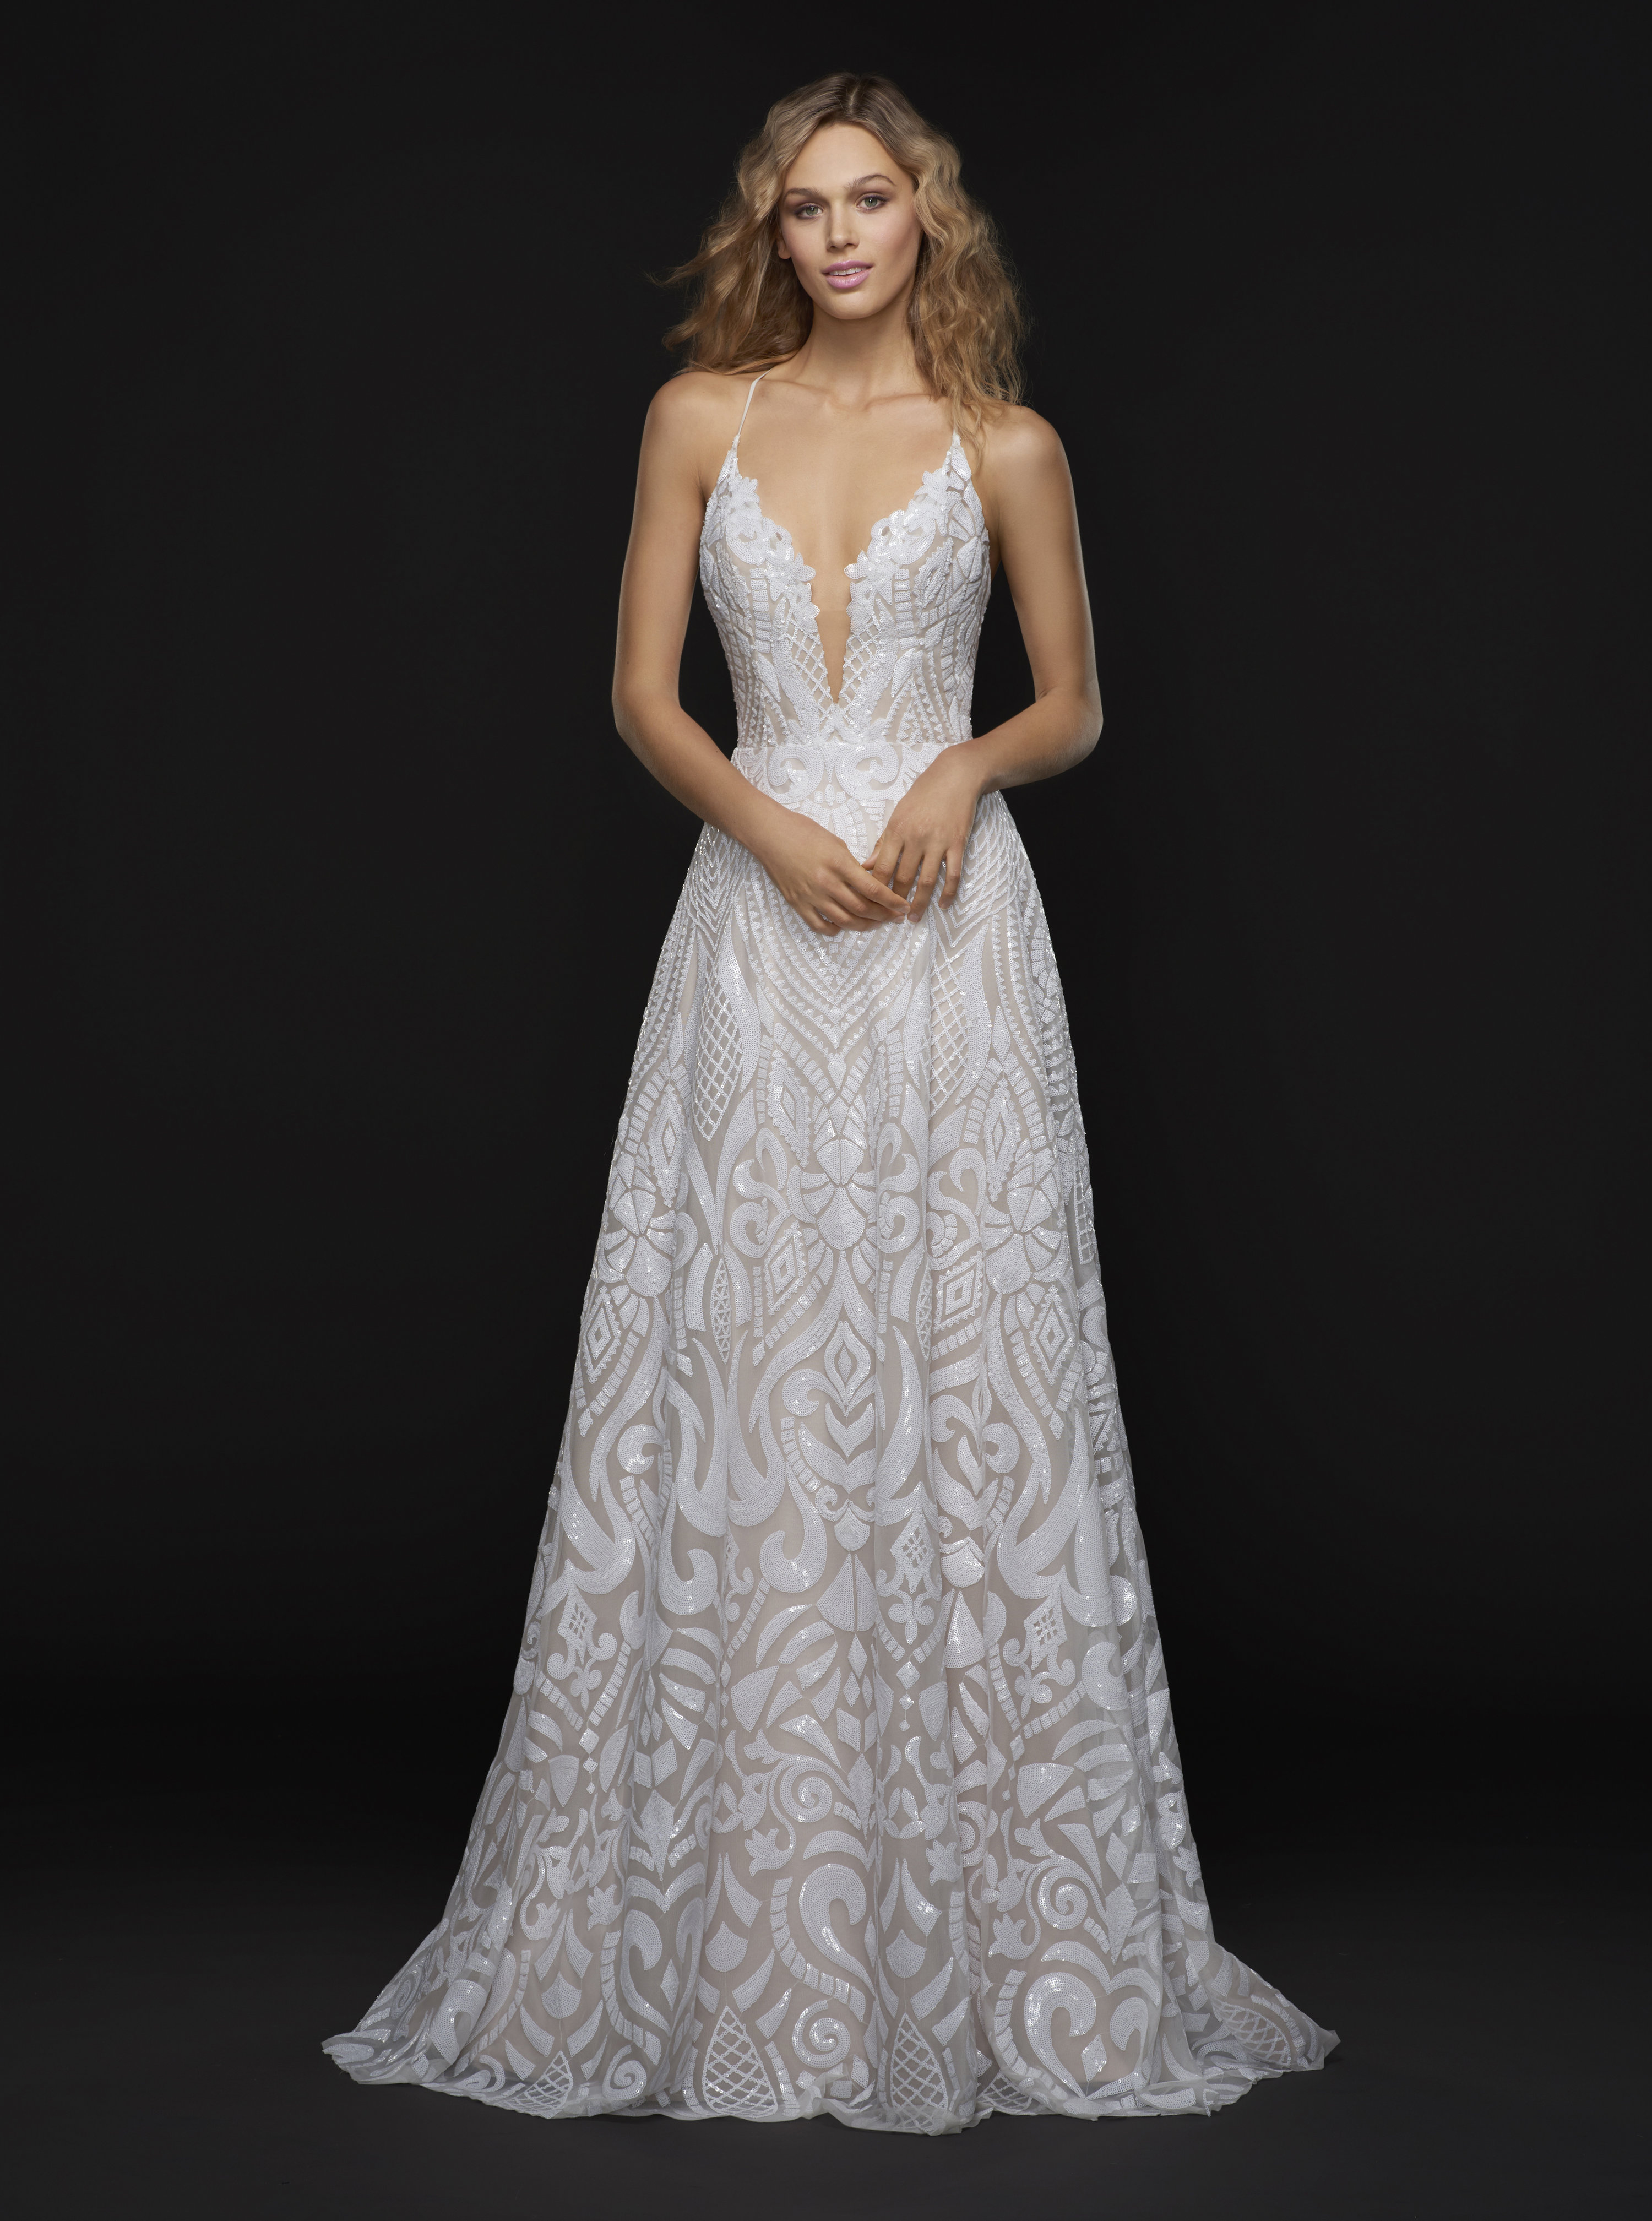 Bridal gowns and wedding dresses by jlm couture style 1751 delta style 1751 delta lookbook front ombrellifo Choice Image